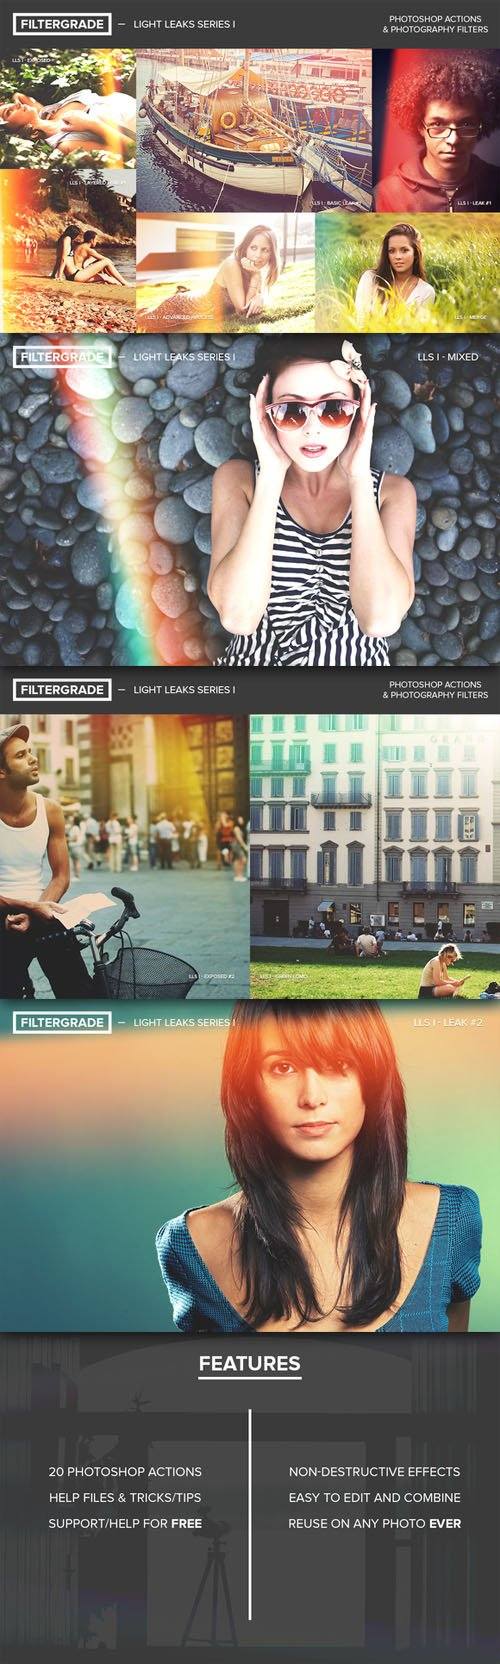 FilterGrade Light Leaks Series I - Creativemarket 19382